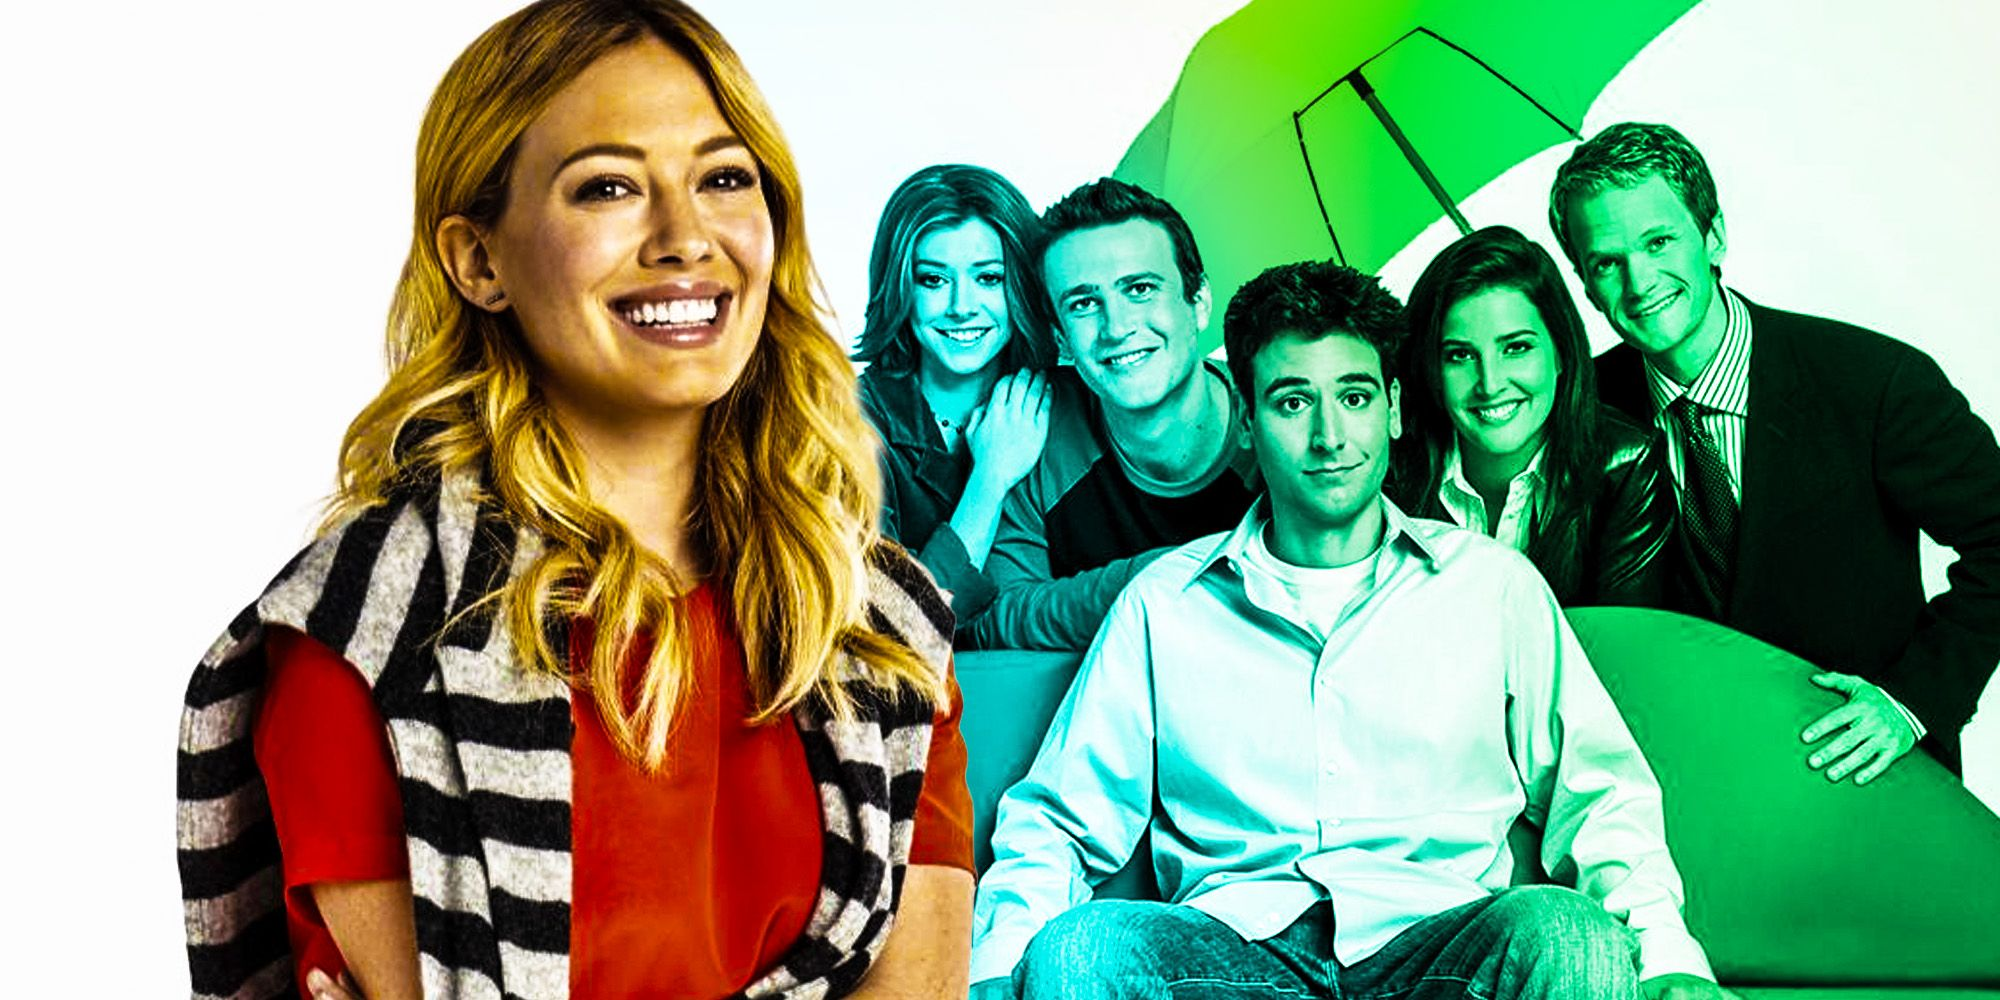 Hilary Duff confirme un lien entre How I Met Your Father et la série originale